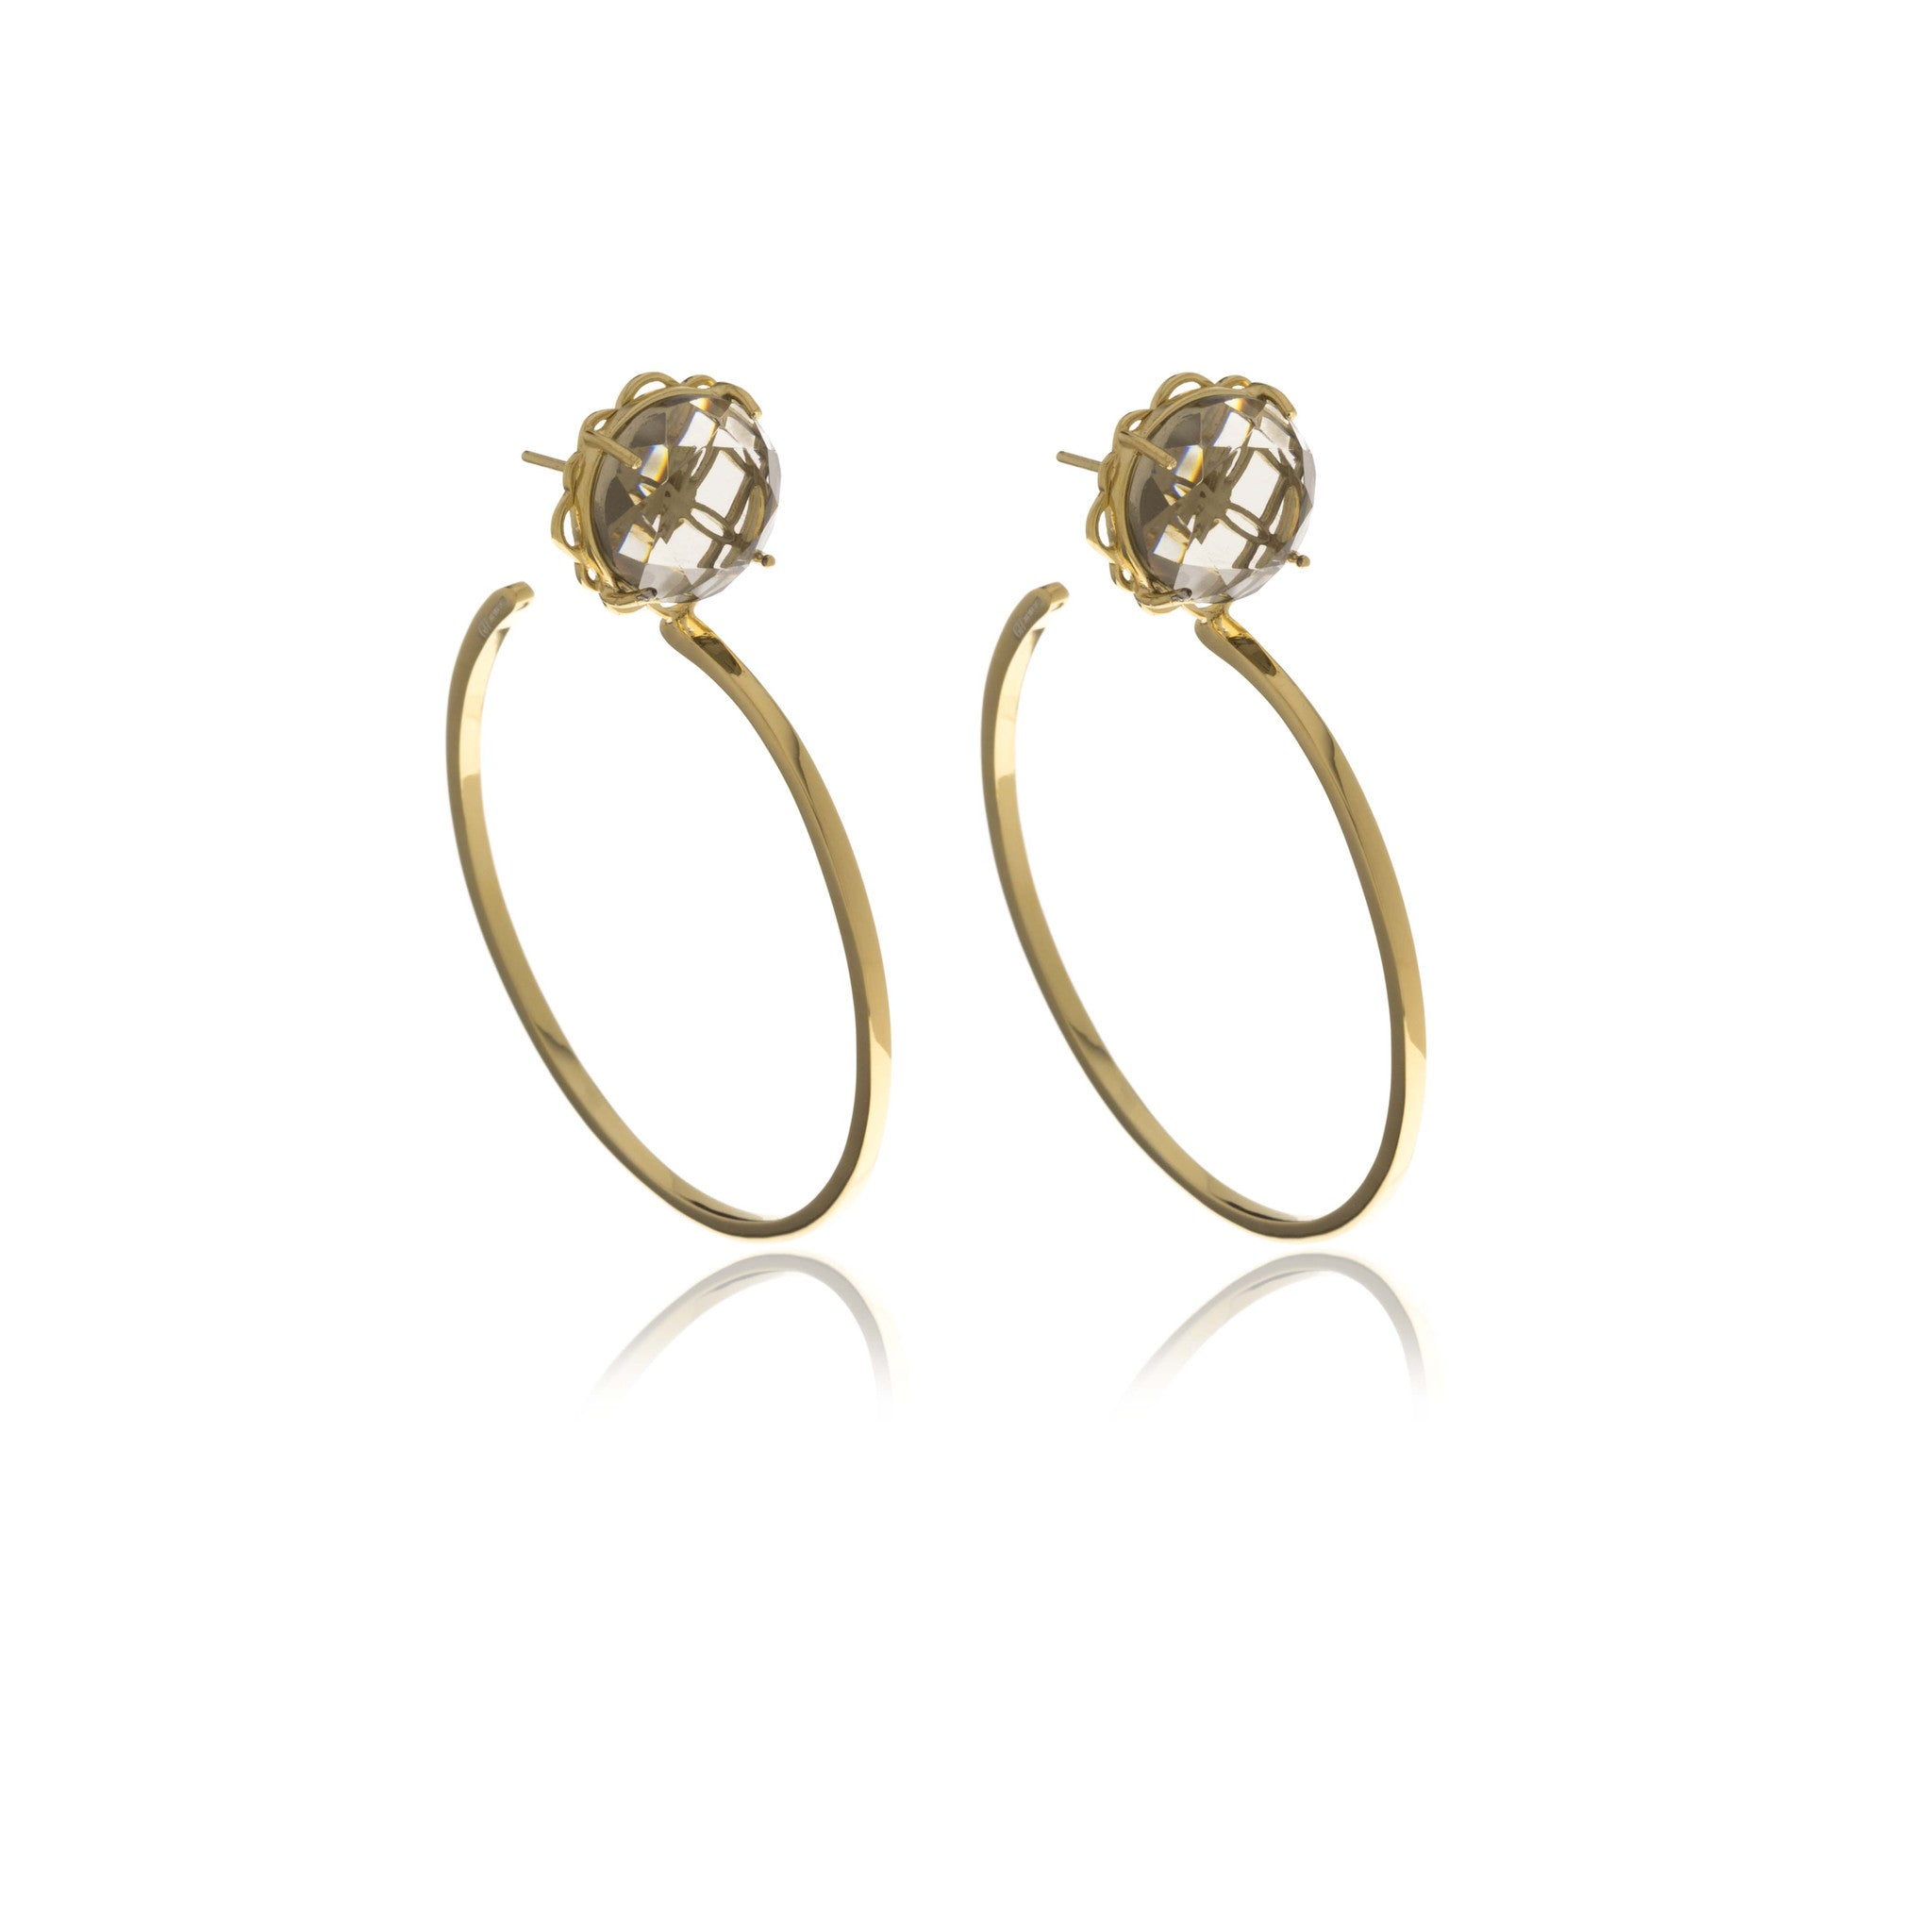 Signature Gold Diamond  Cut Hoops  Crystal Earrings - MCK Brands